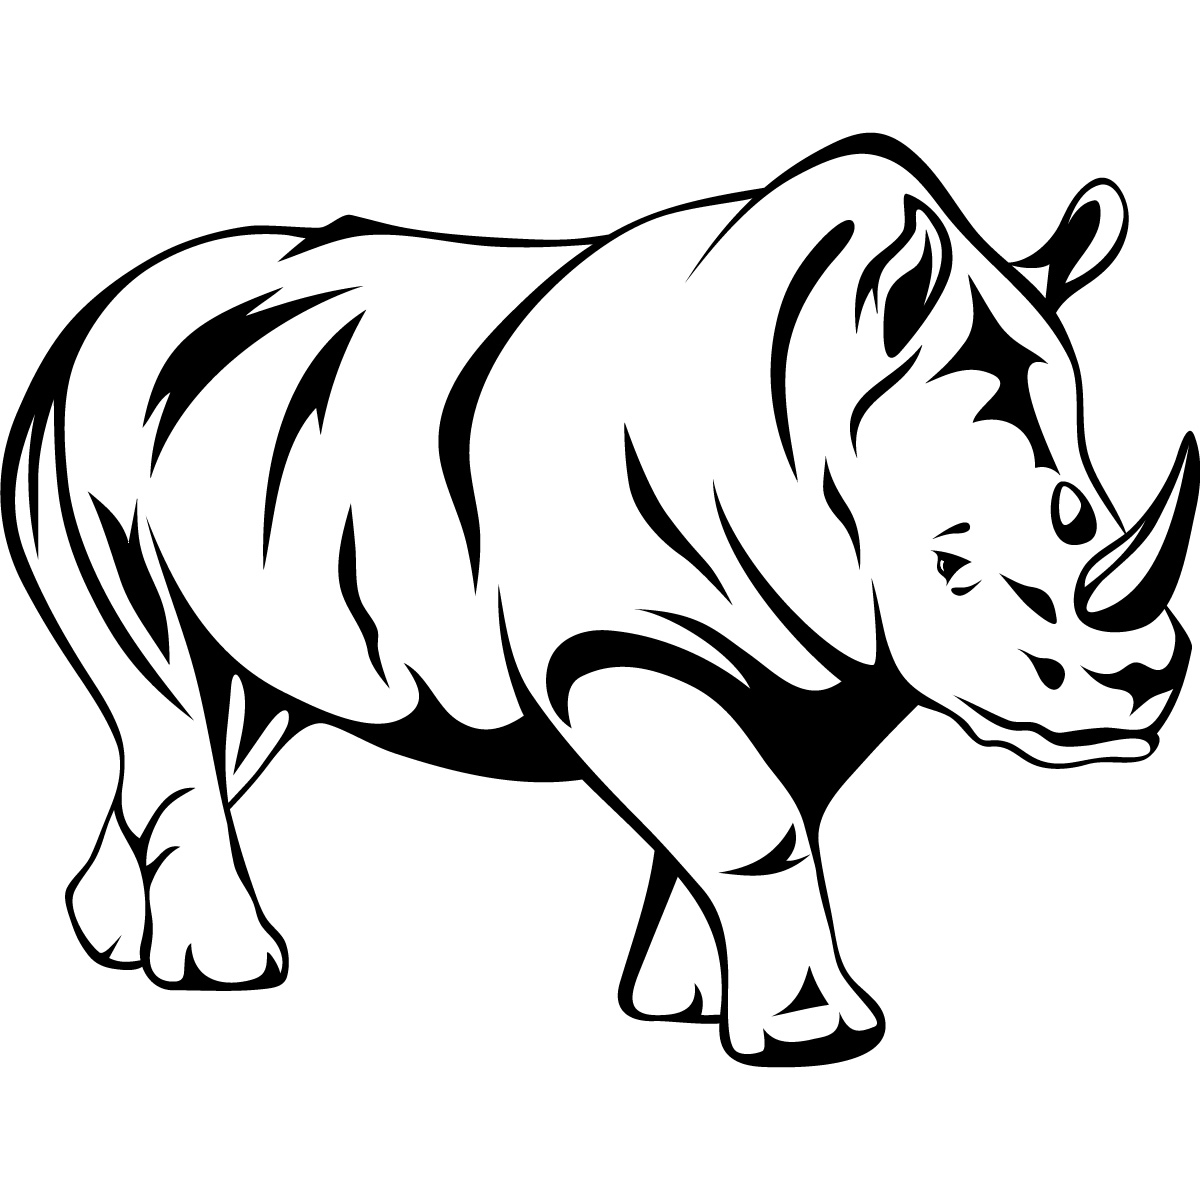 Line Drawings Animals Wildlife : Animal line drawings clipart best